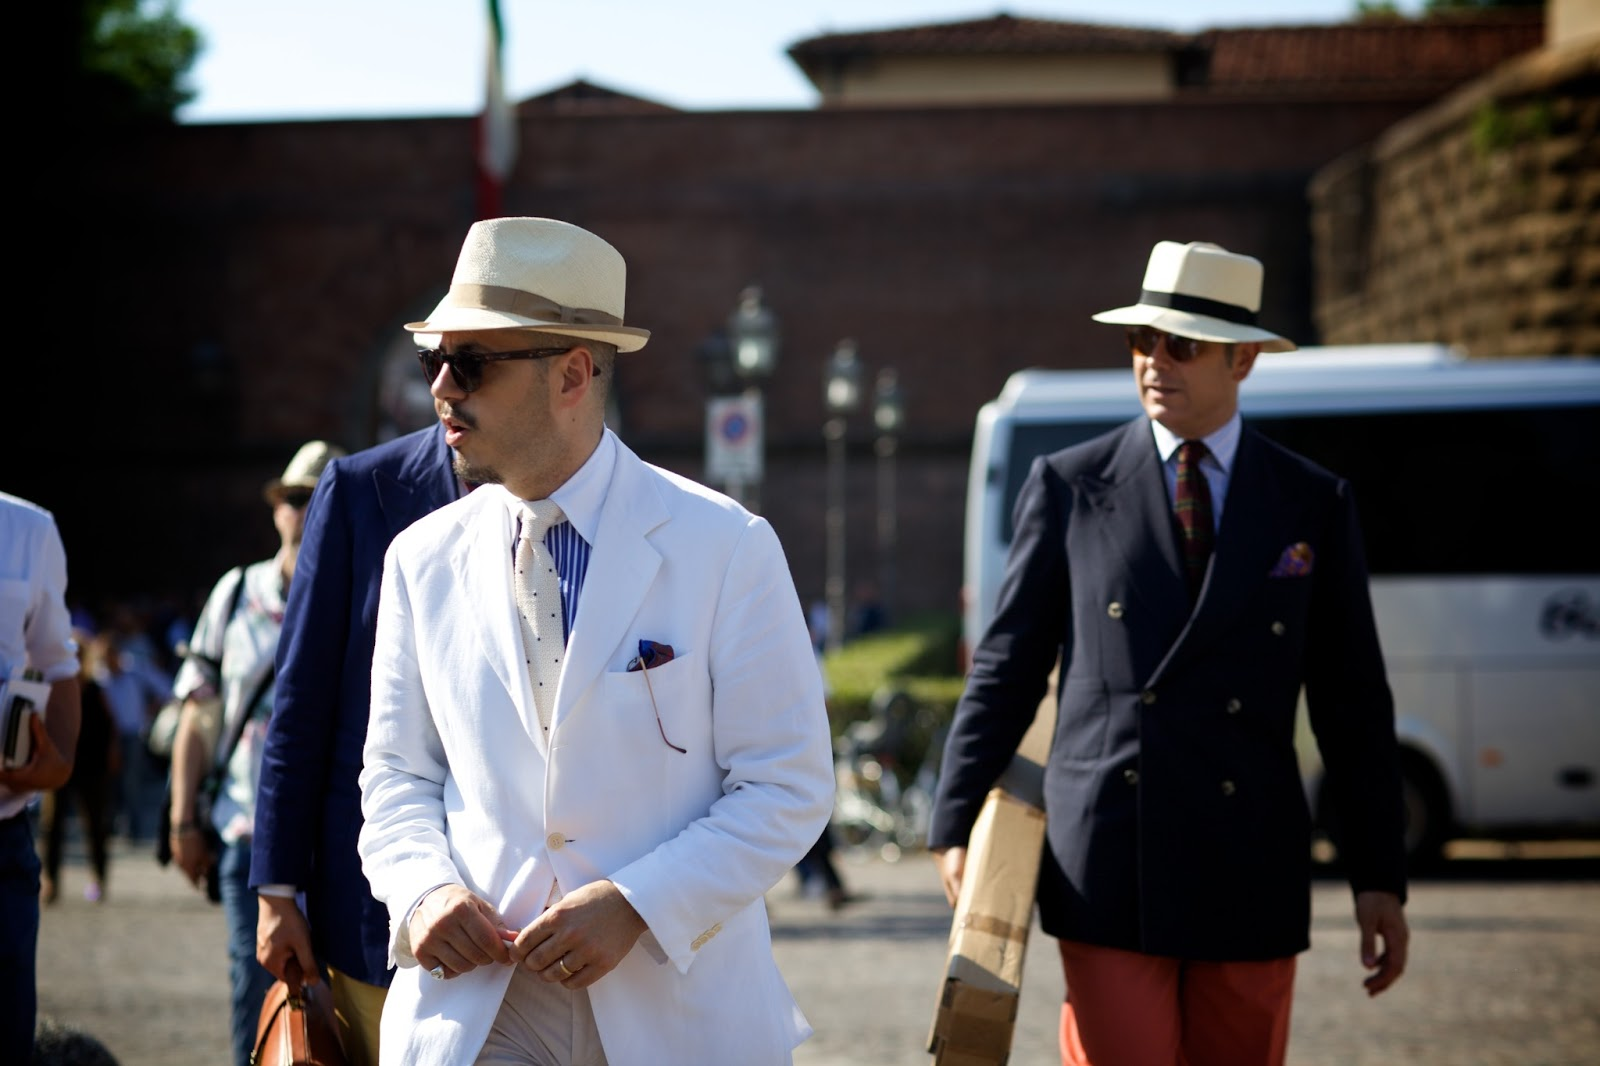 7438e75505b4dc The gent in front of the trio in a white summer jacket, crisp white  contrasting shirting and a Summer hat